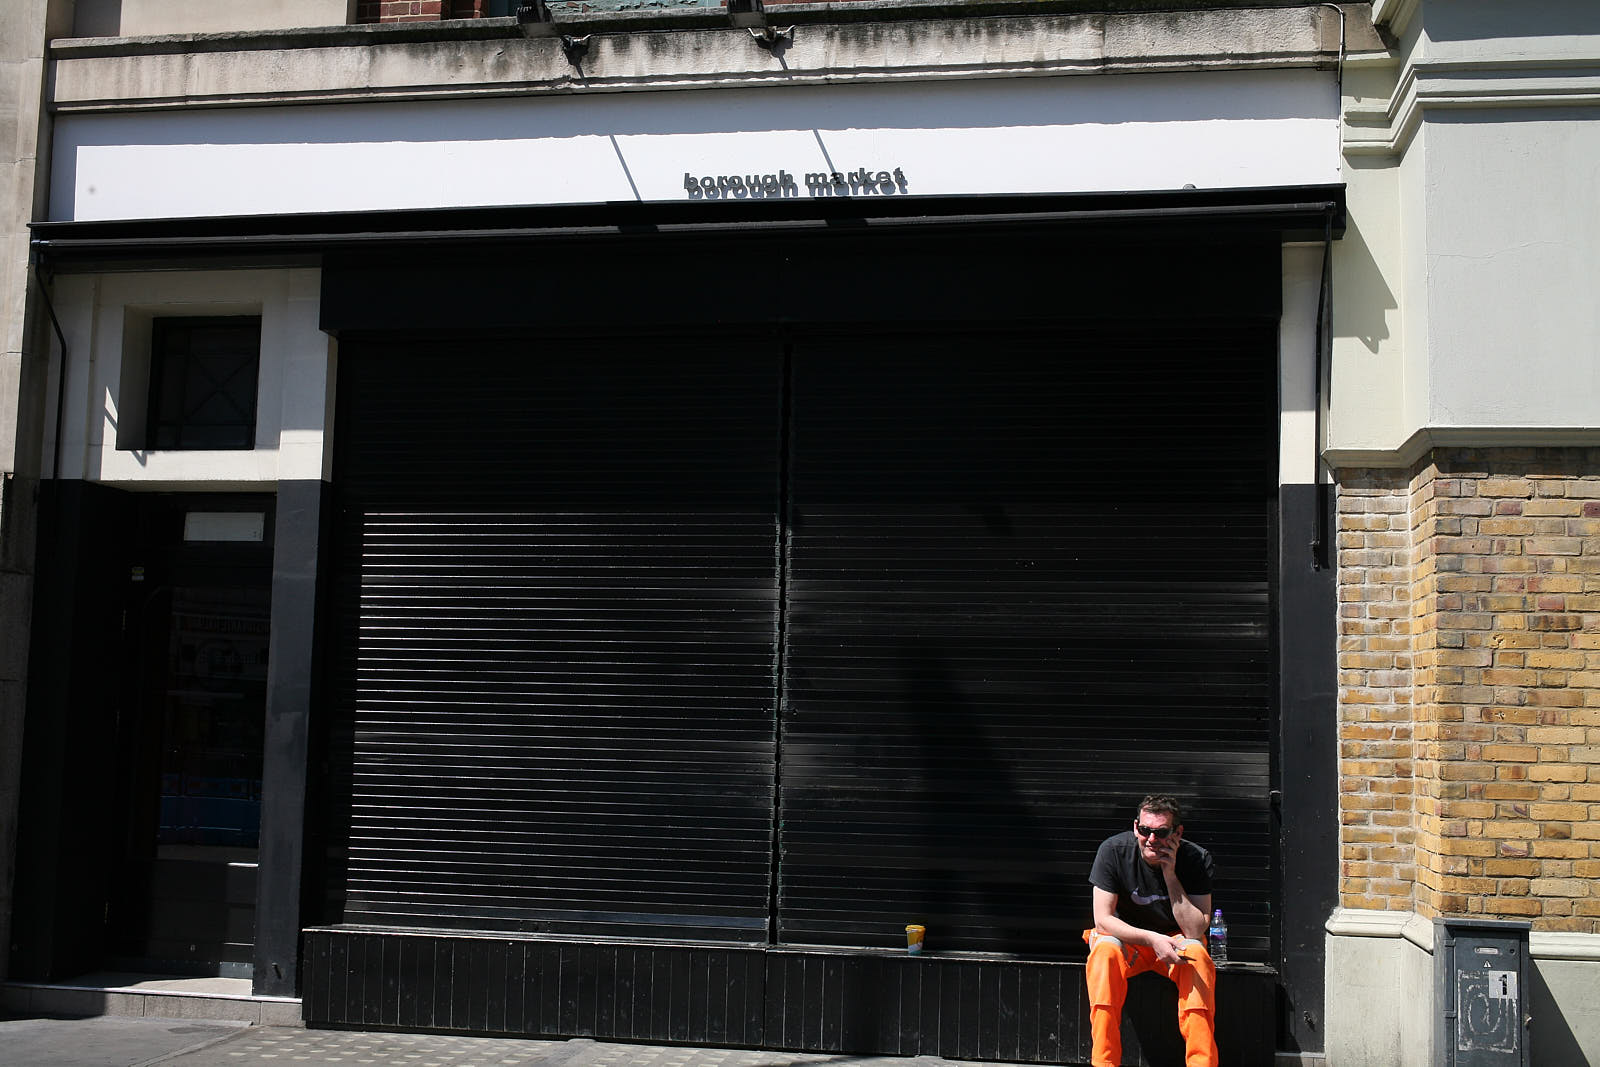 Restaurants in London remain closed as a result of COVID-19